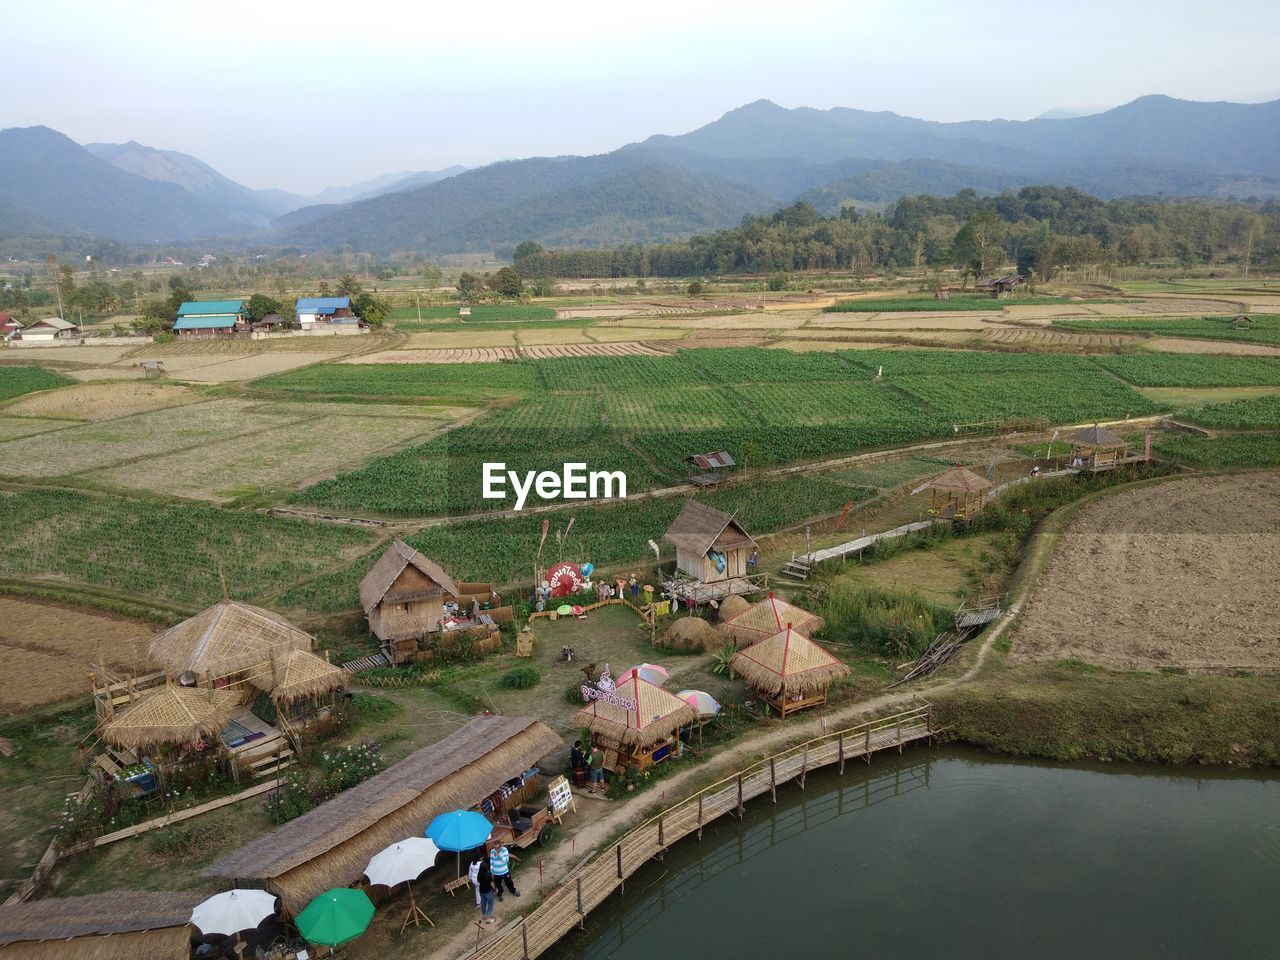 HIGH ANGLE VIEW OF PEOPLE ON AGRICULTURAL FIELD